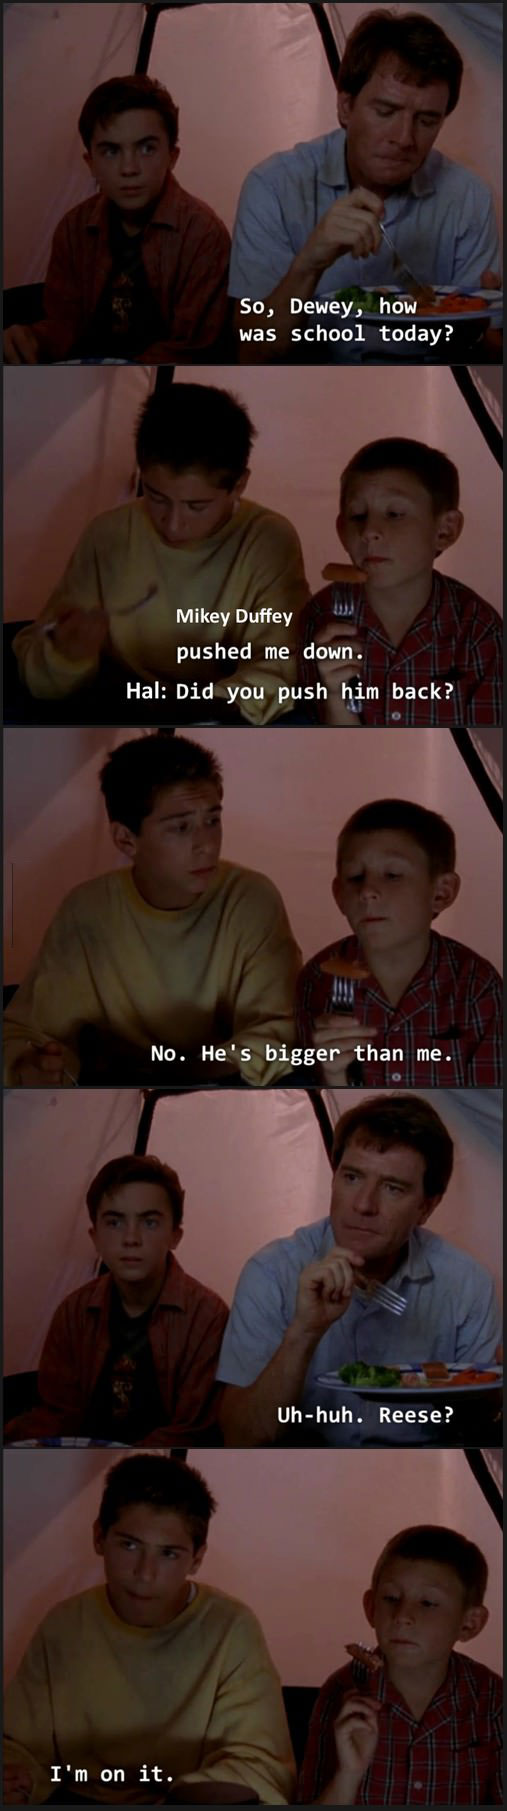 so dewey how was school today, malcolm in the middle, lol